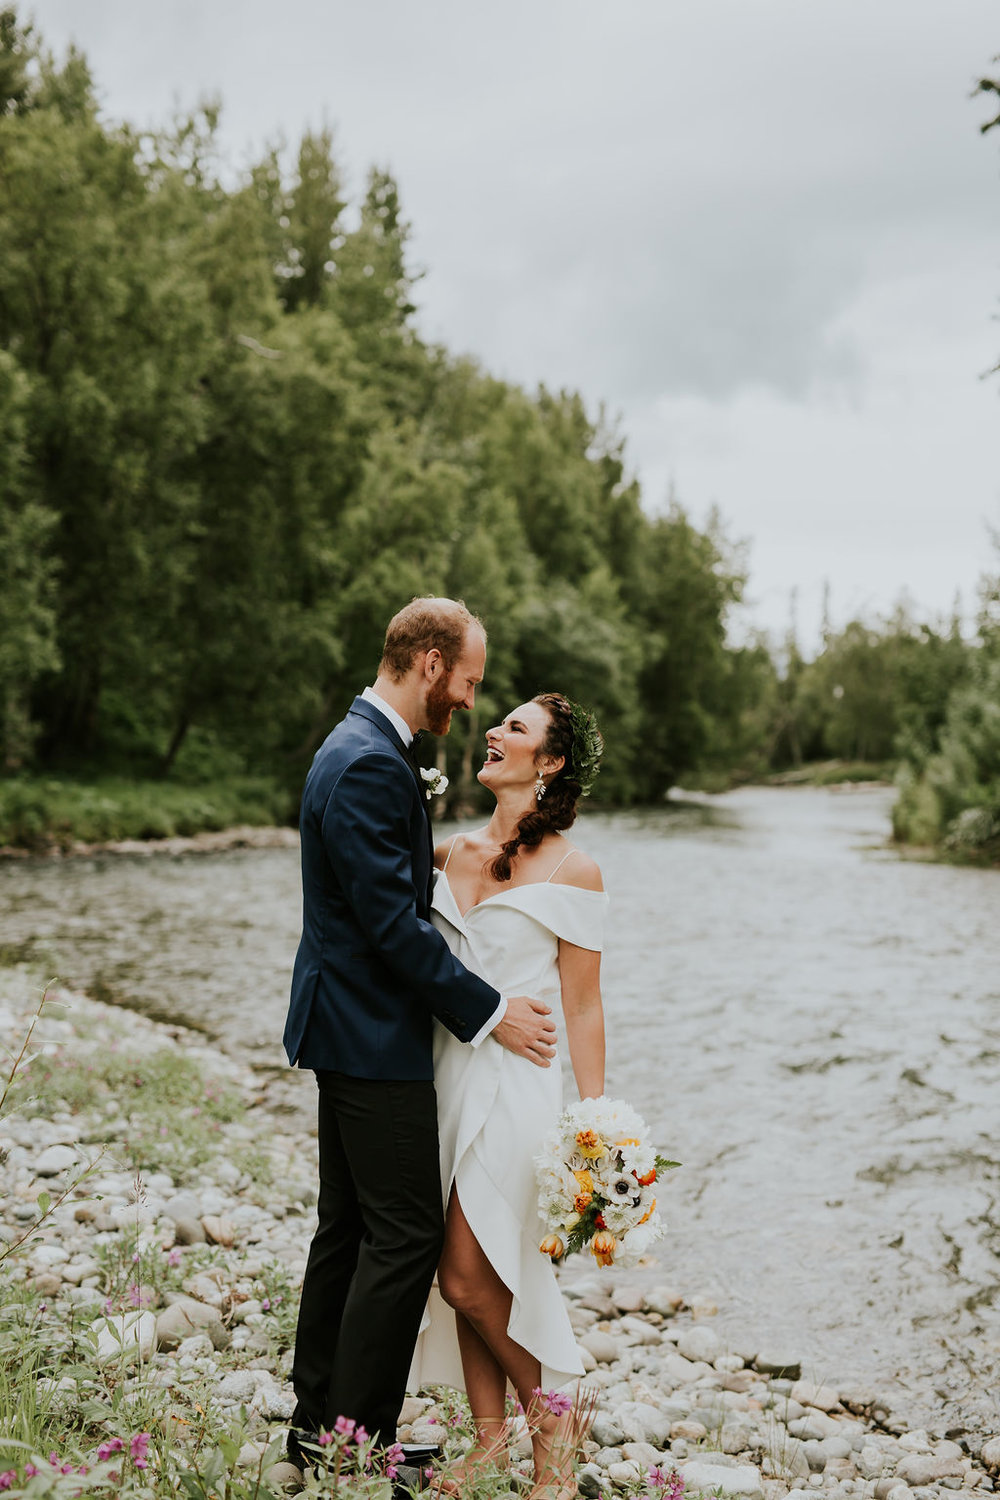 Alaskan Farm Wedding - Blomma Designs - Alaska Wedding Planning and Design